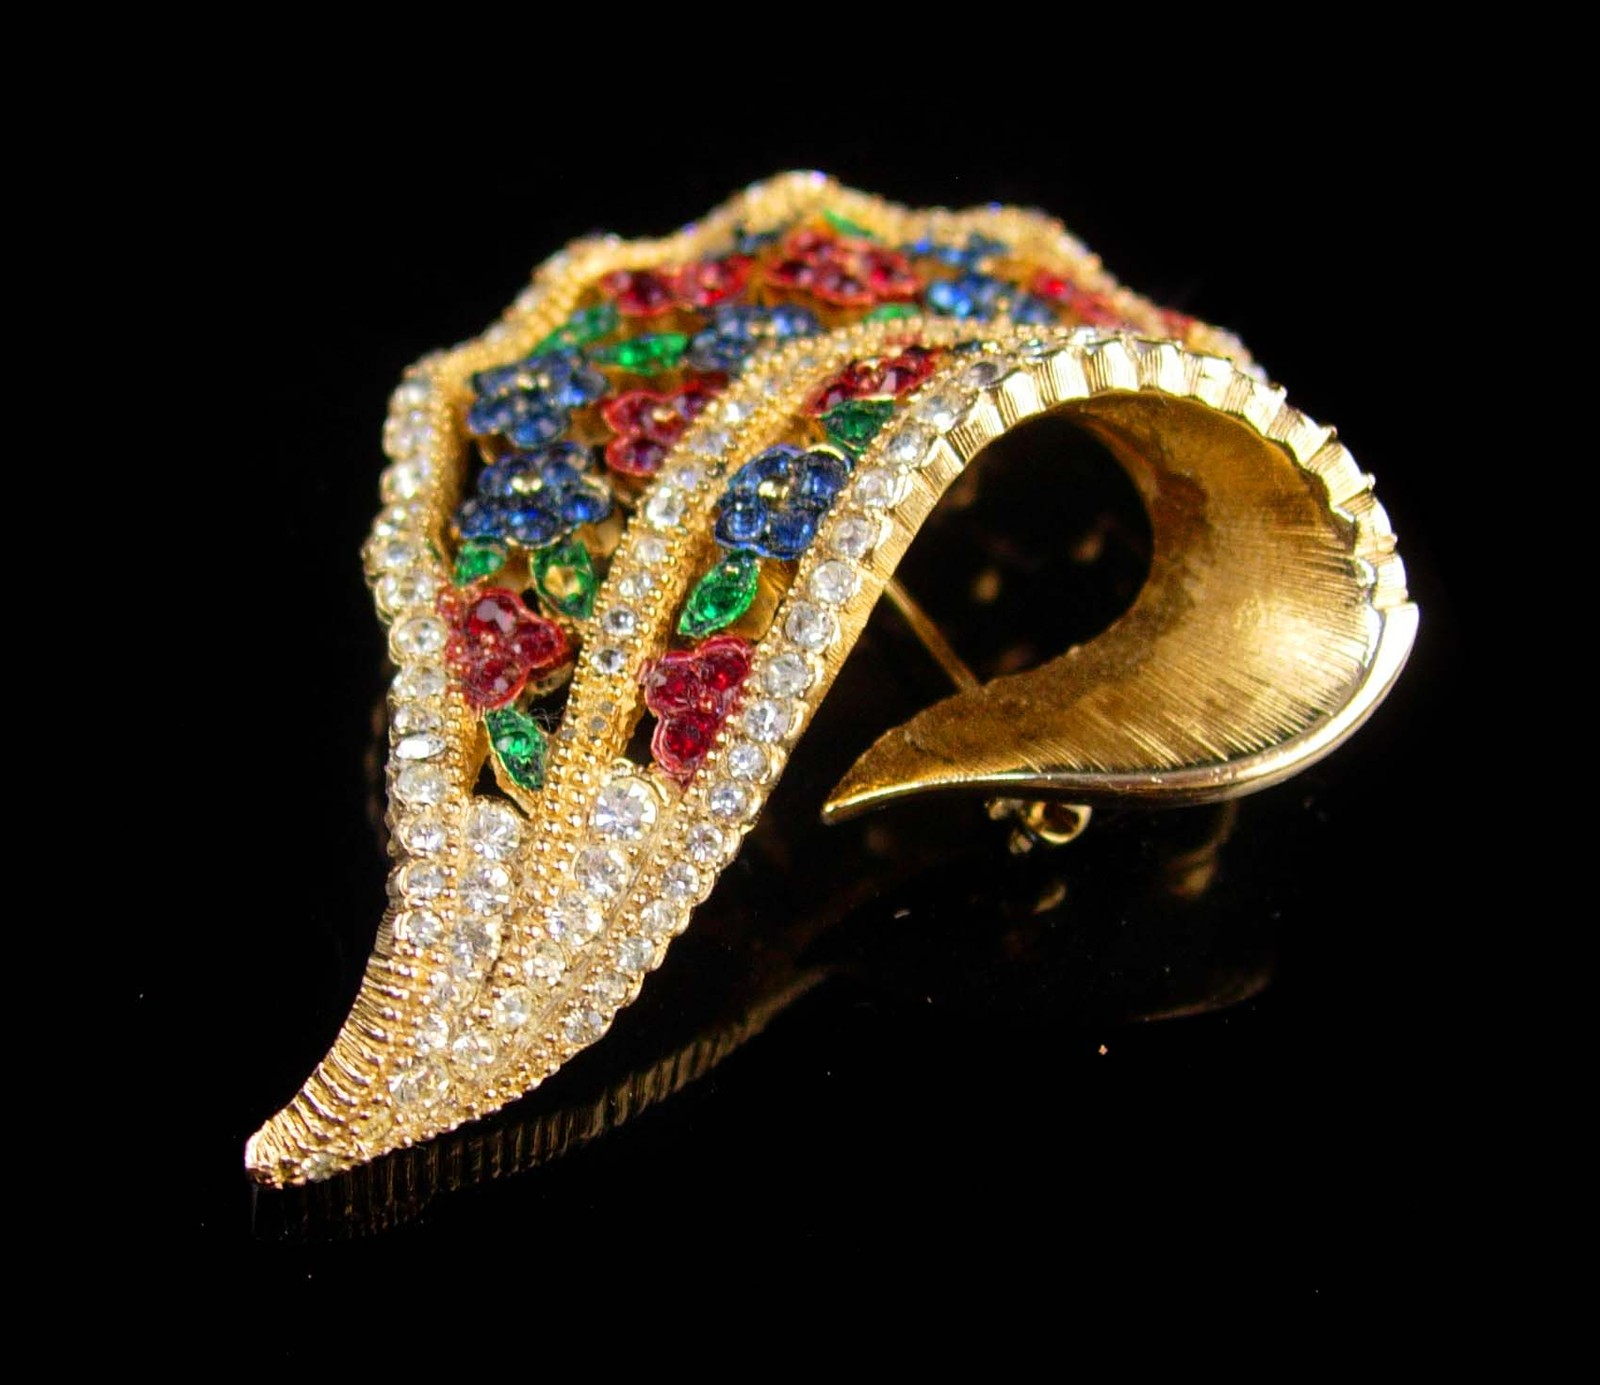 Couture Jewelry - Signed LeC Le Couturier - Marcel Boucher - designer couture  image 5